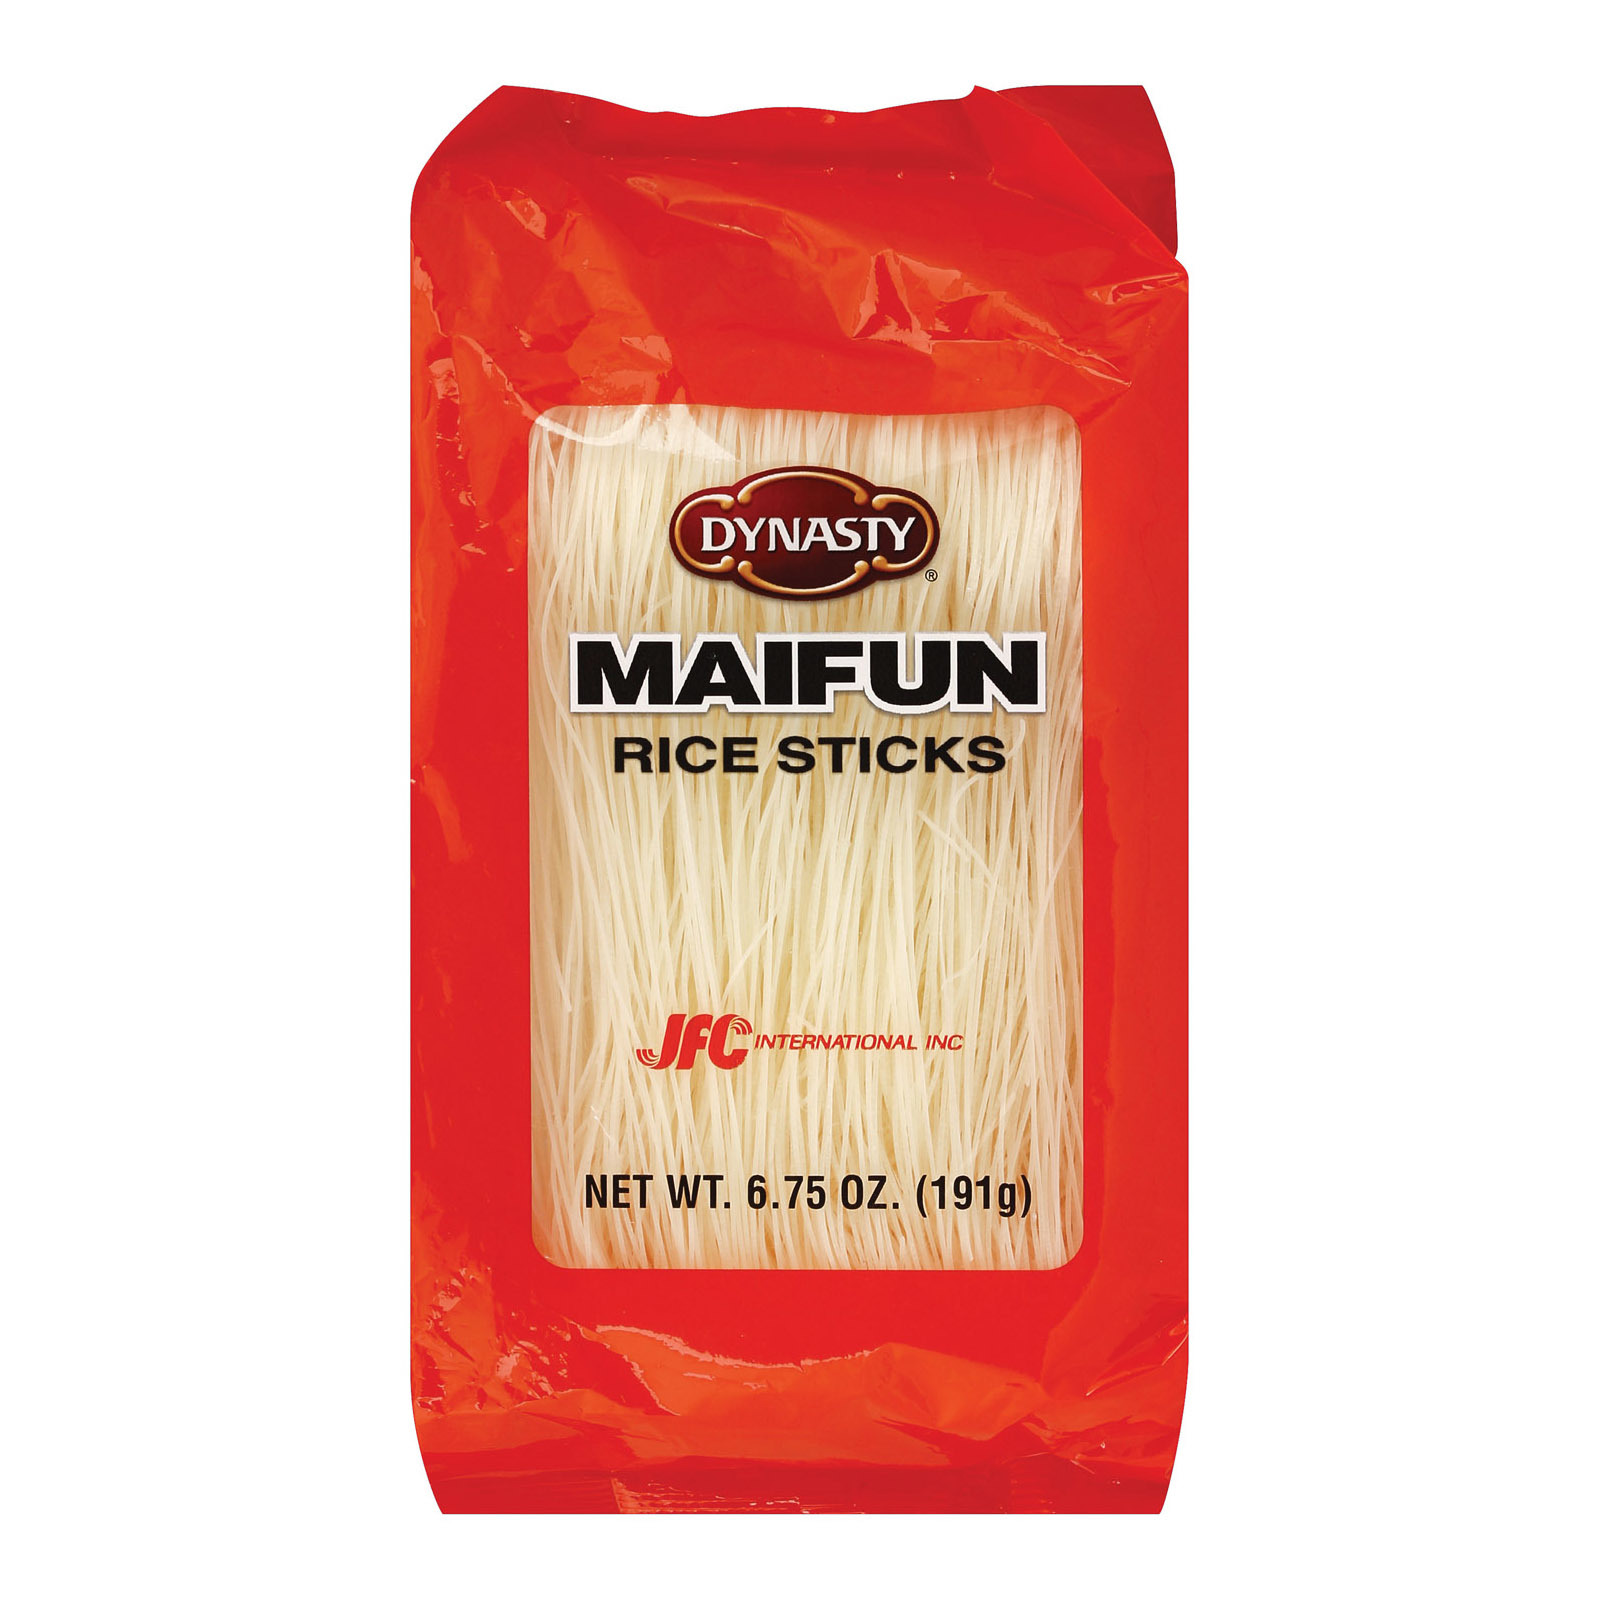 Dynasty Maifun Rice Sticks - Case of 12 - 6.75 oz.